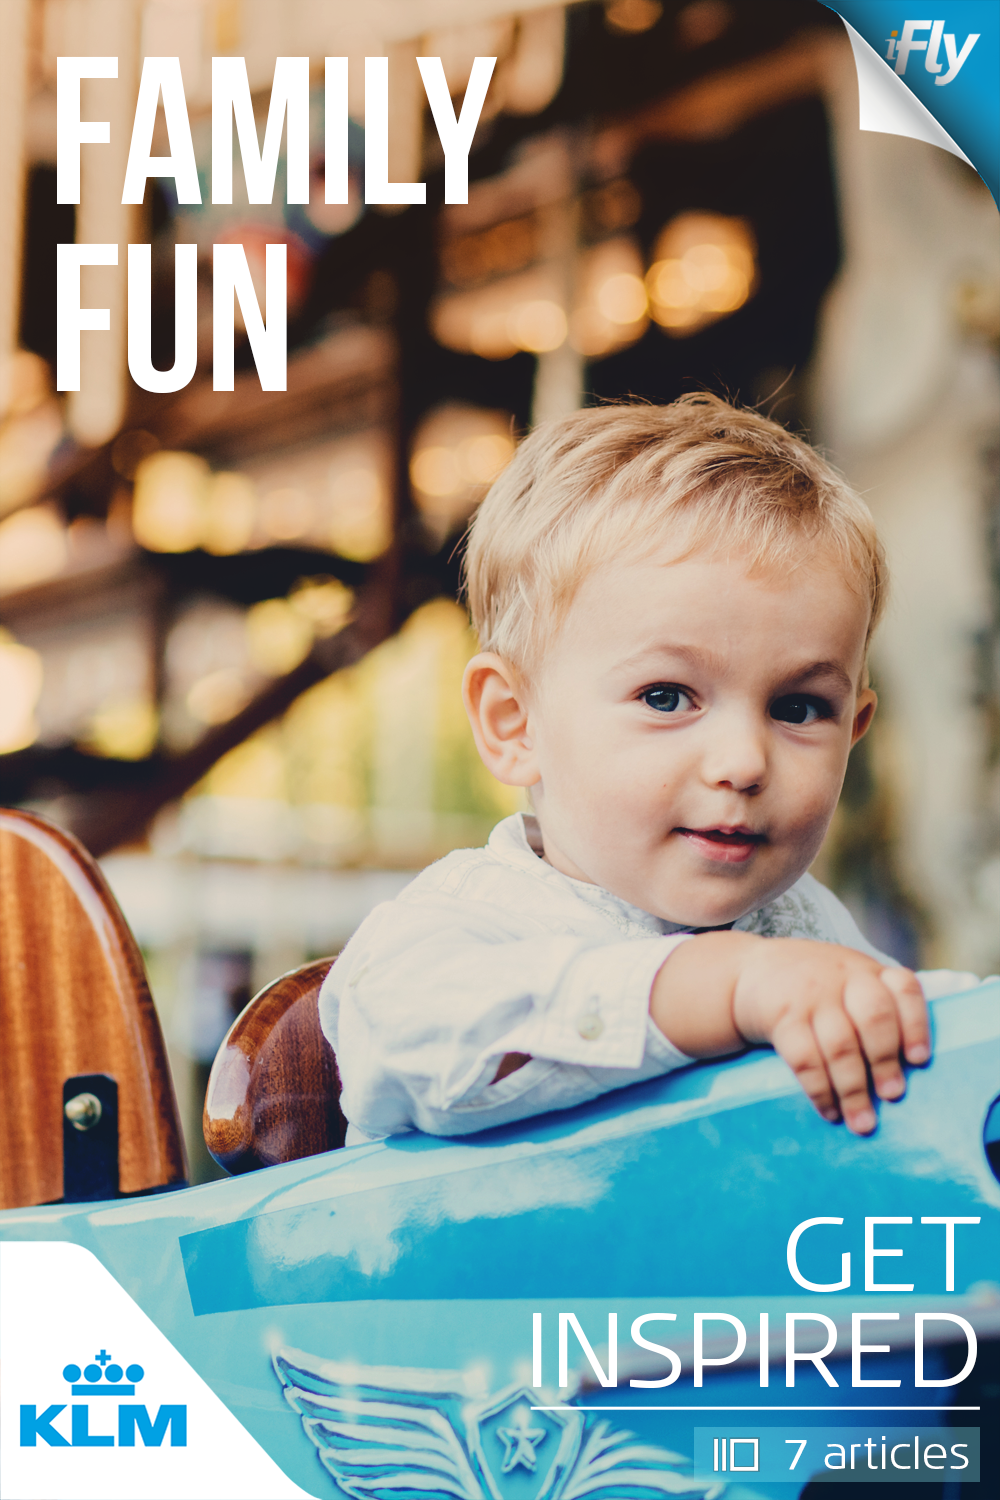 Where Are You Going Travel With Kids Best Holiday Destinations Family Fun